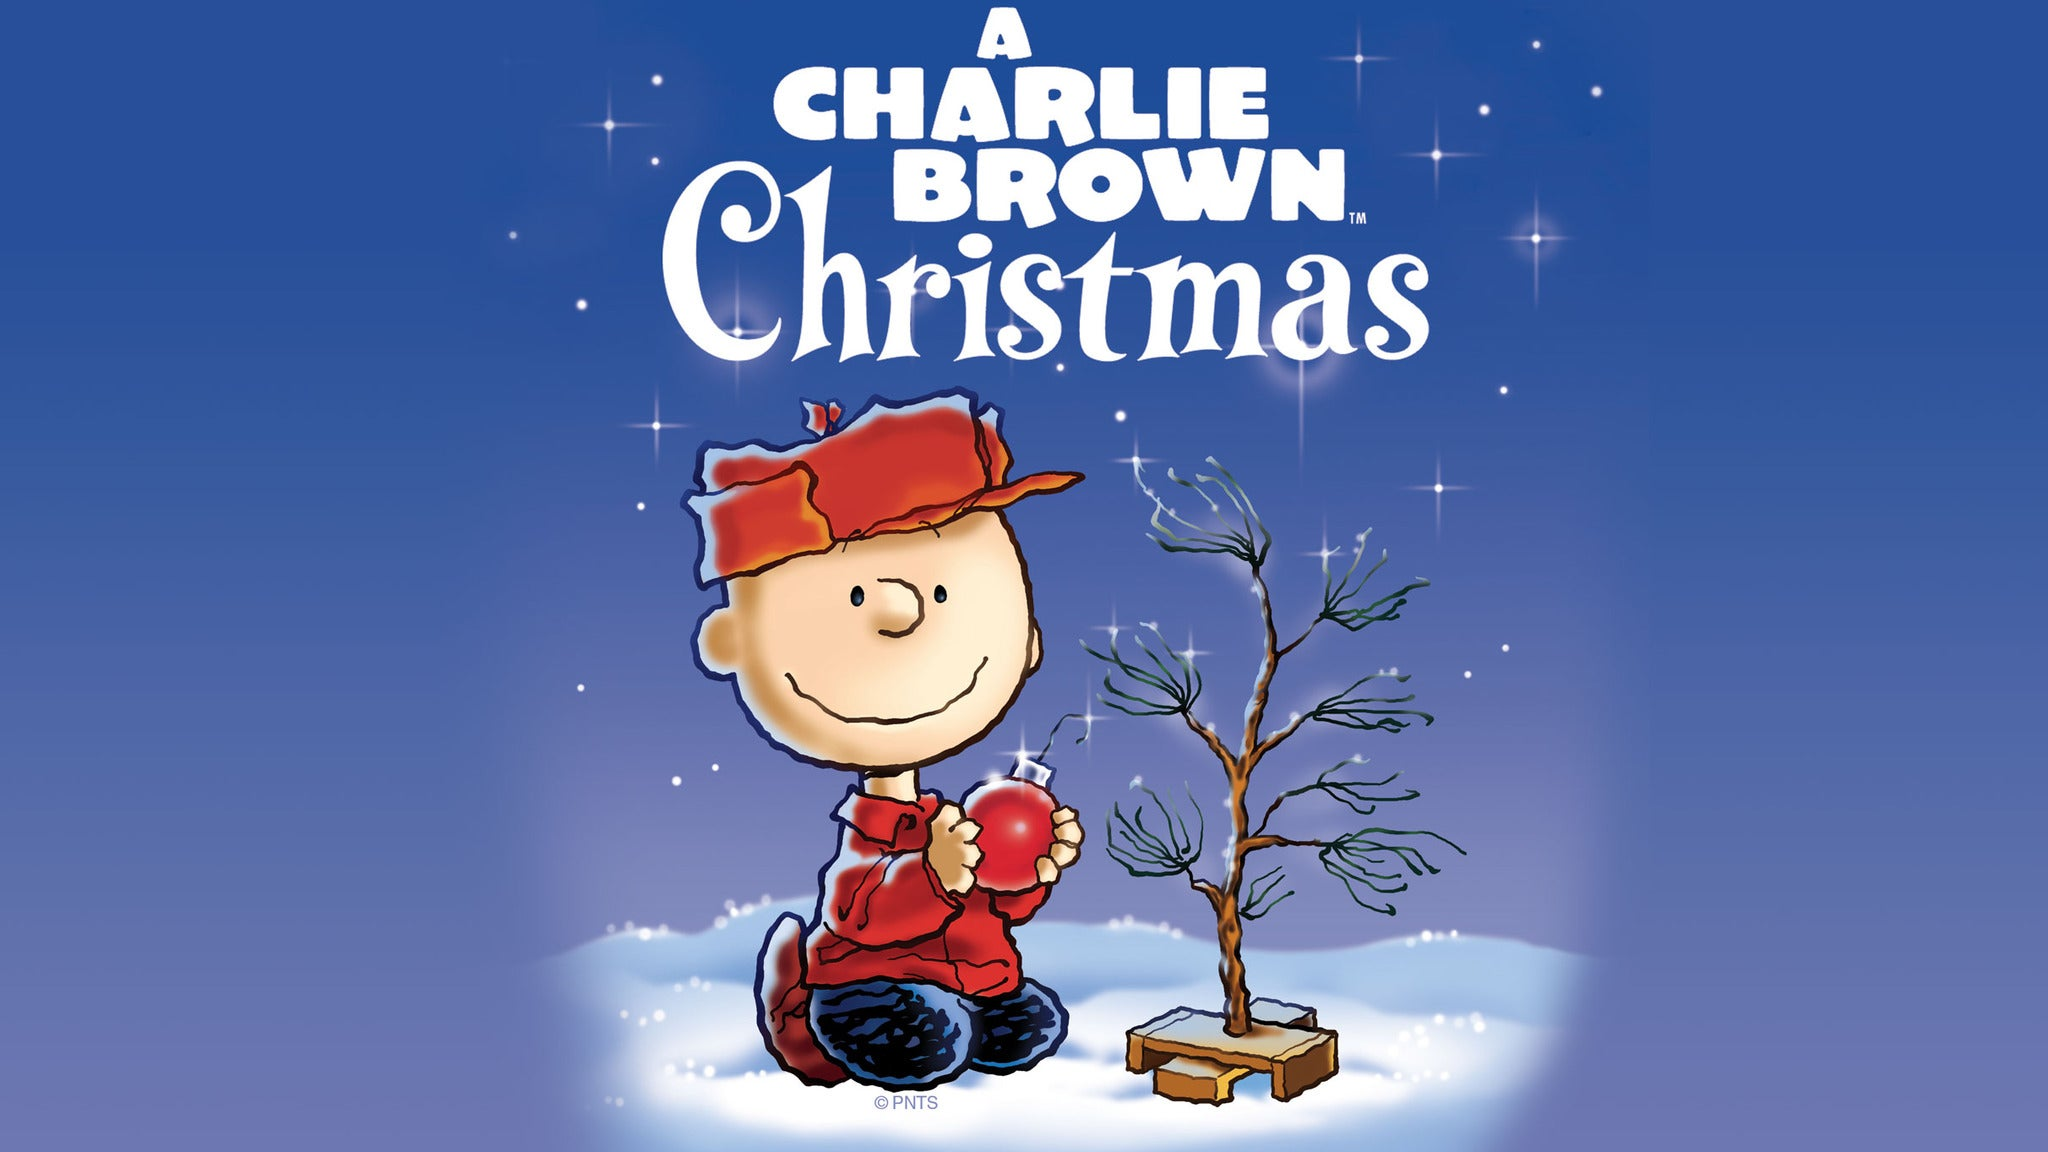 AEG Presents A Charlie Brown Christmas Live On Stage